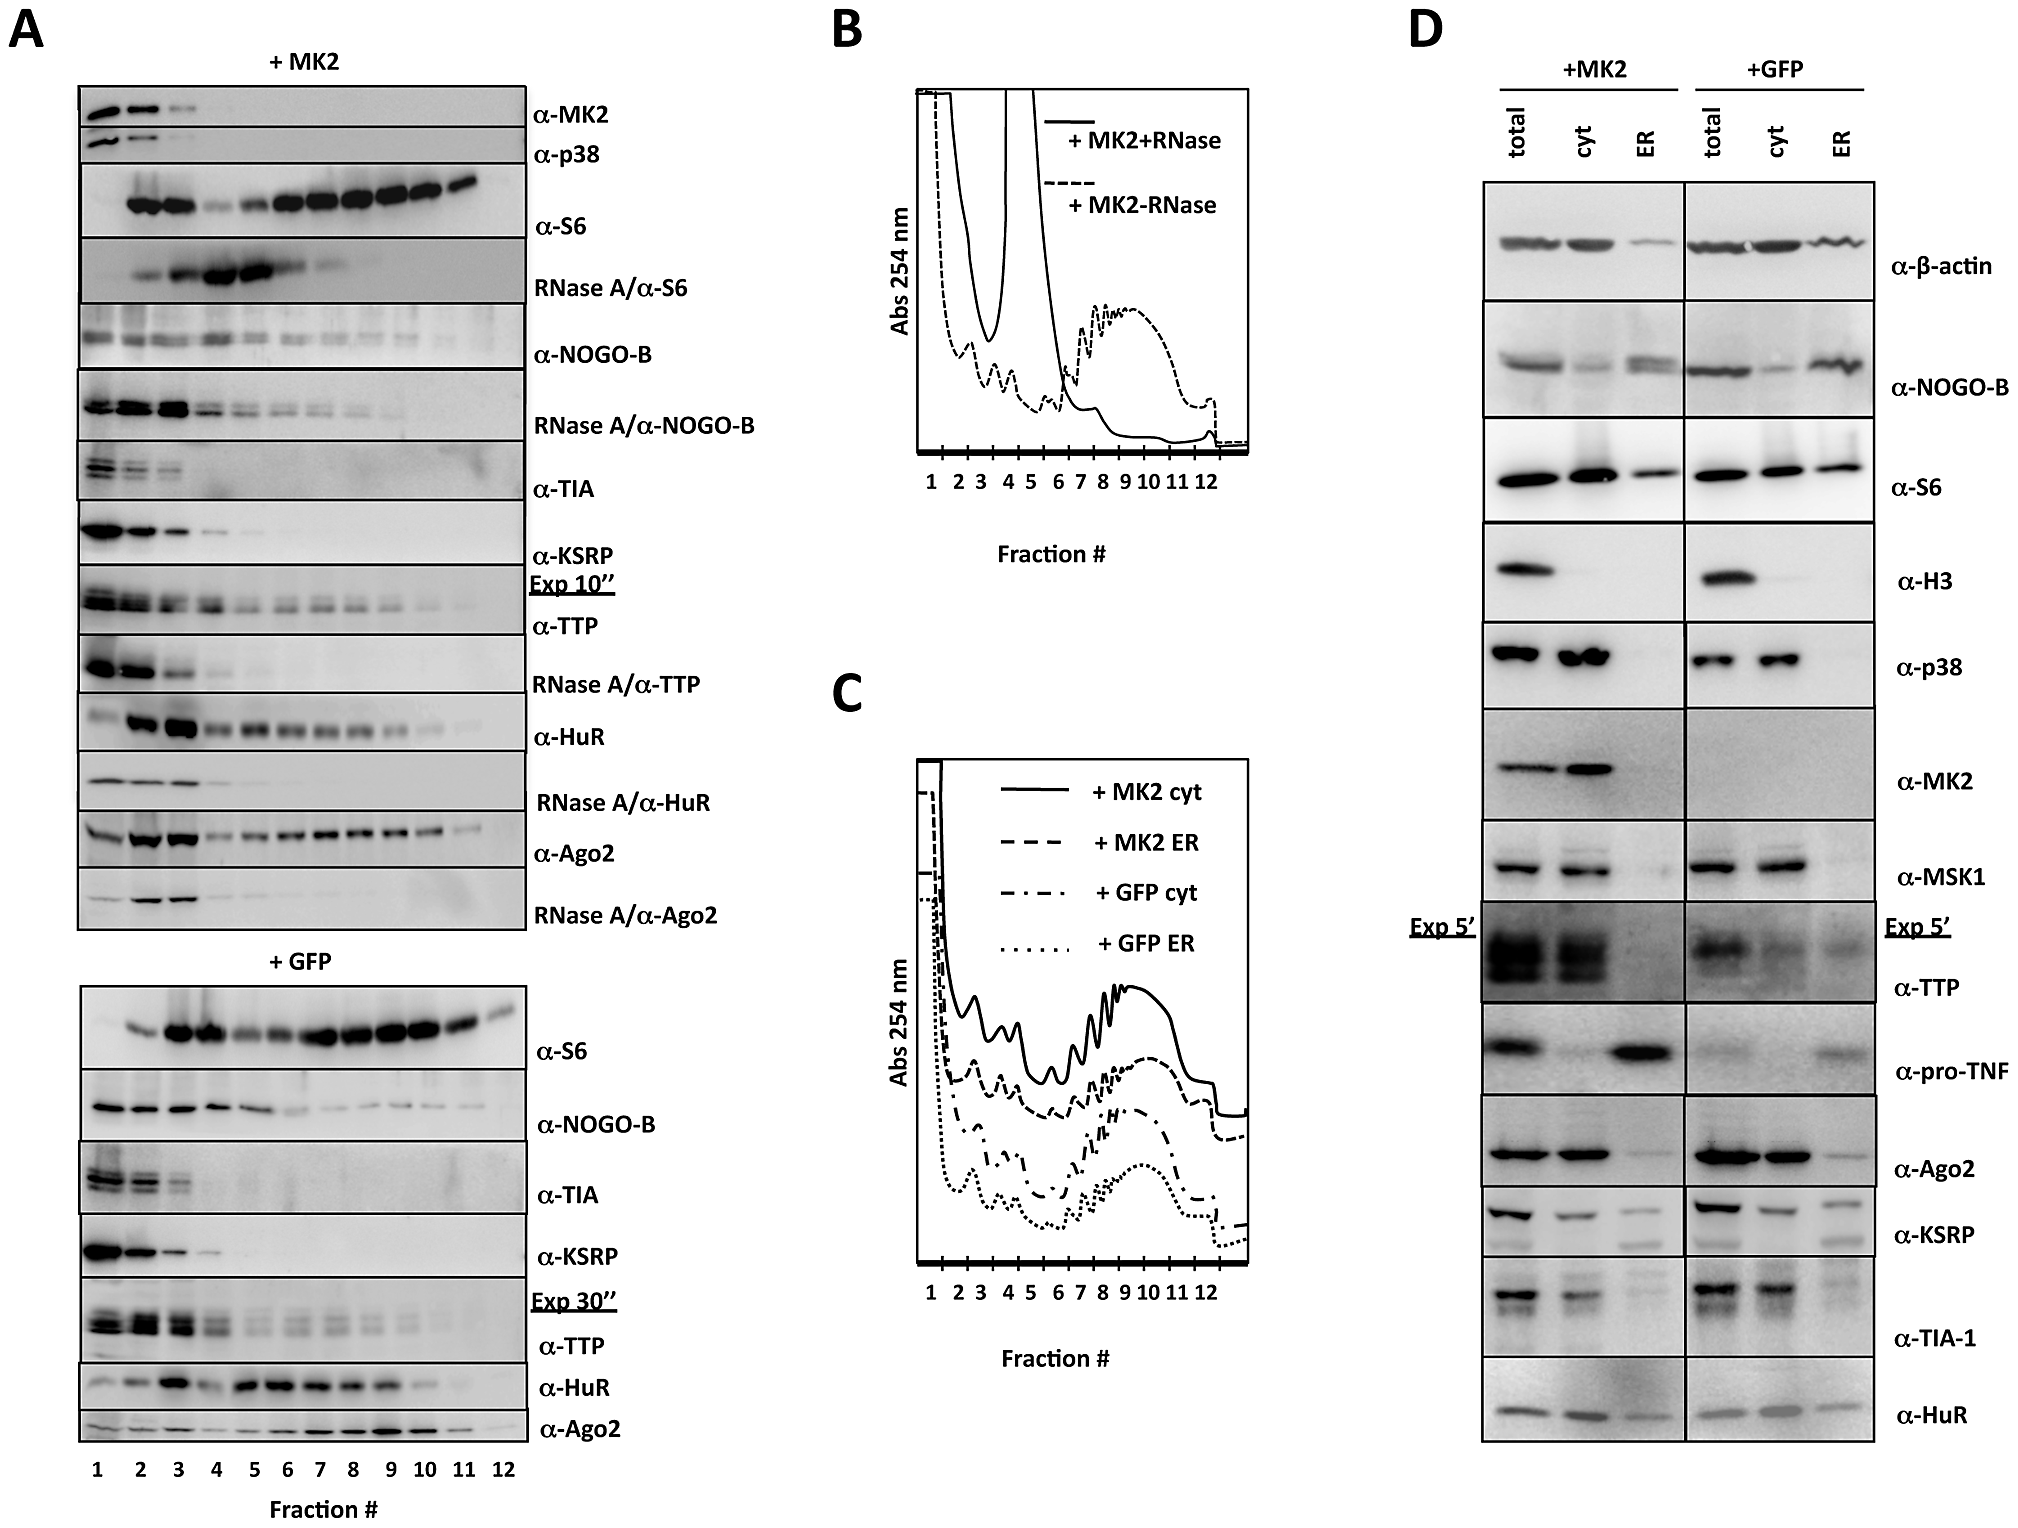 Western blot analysis of protein distribution in polysome profiling and ER/cytosolic sub-fractionation.